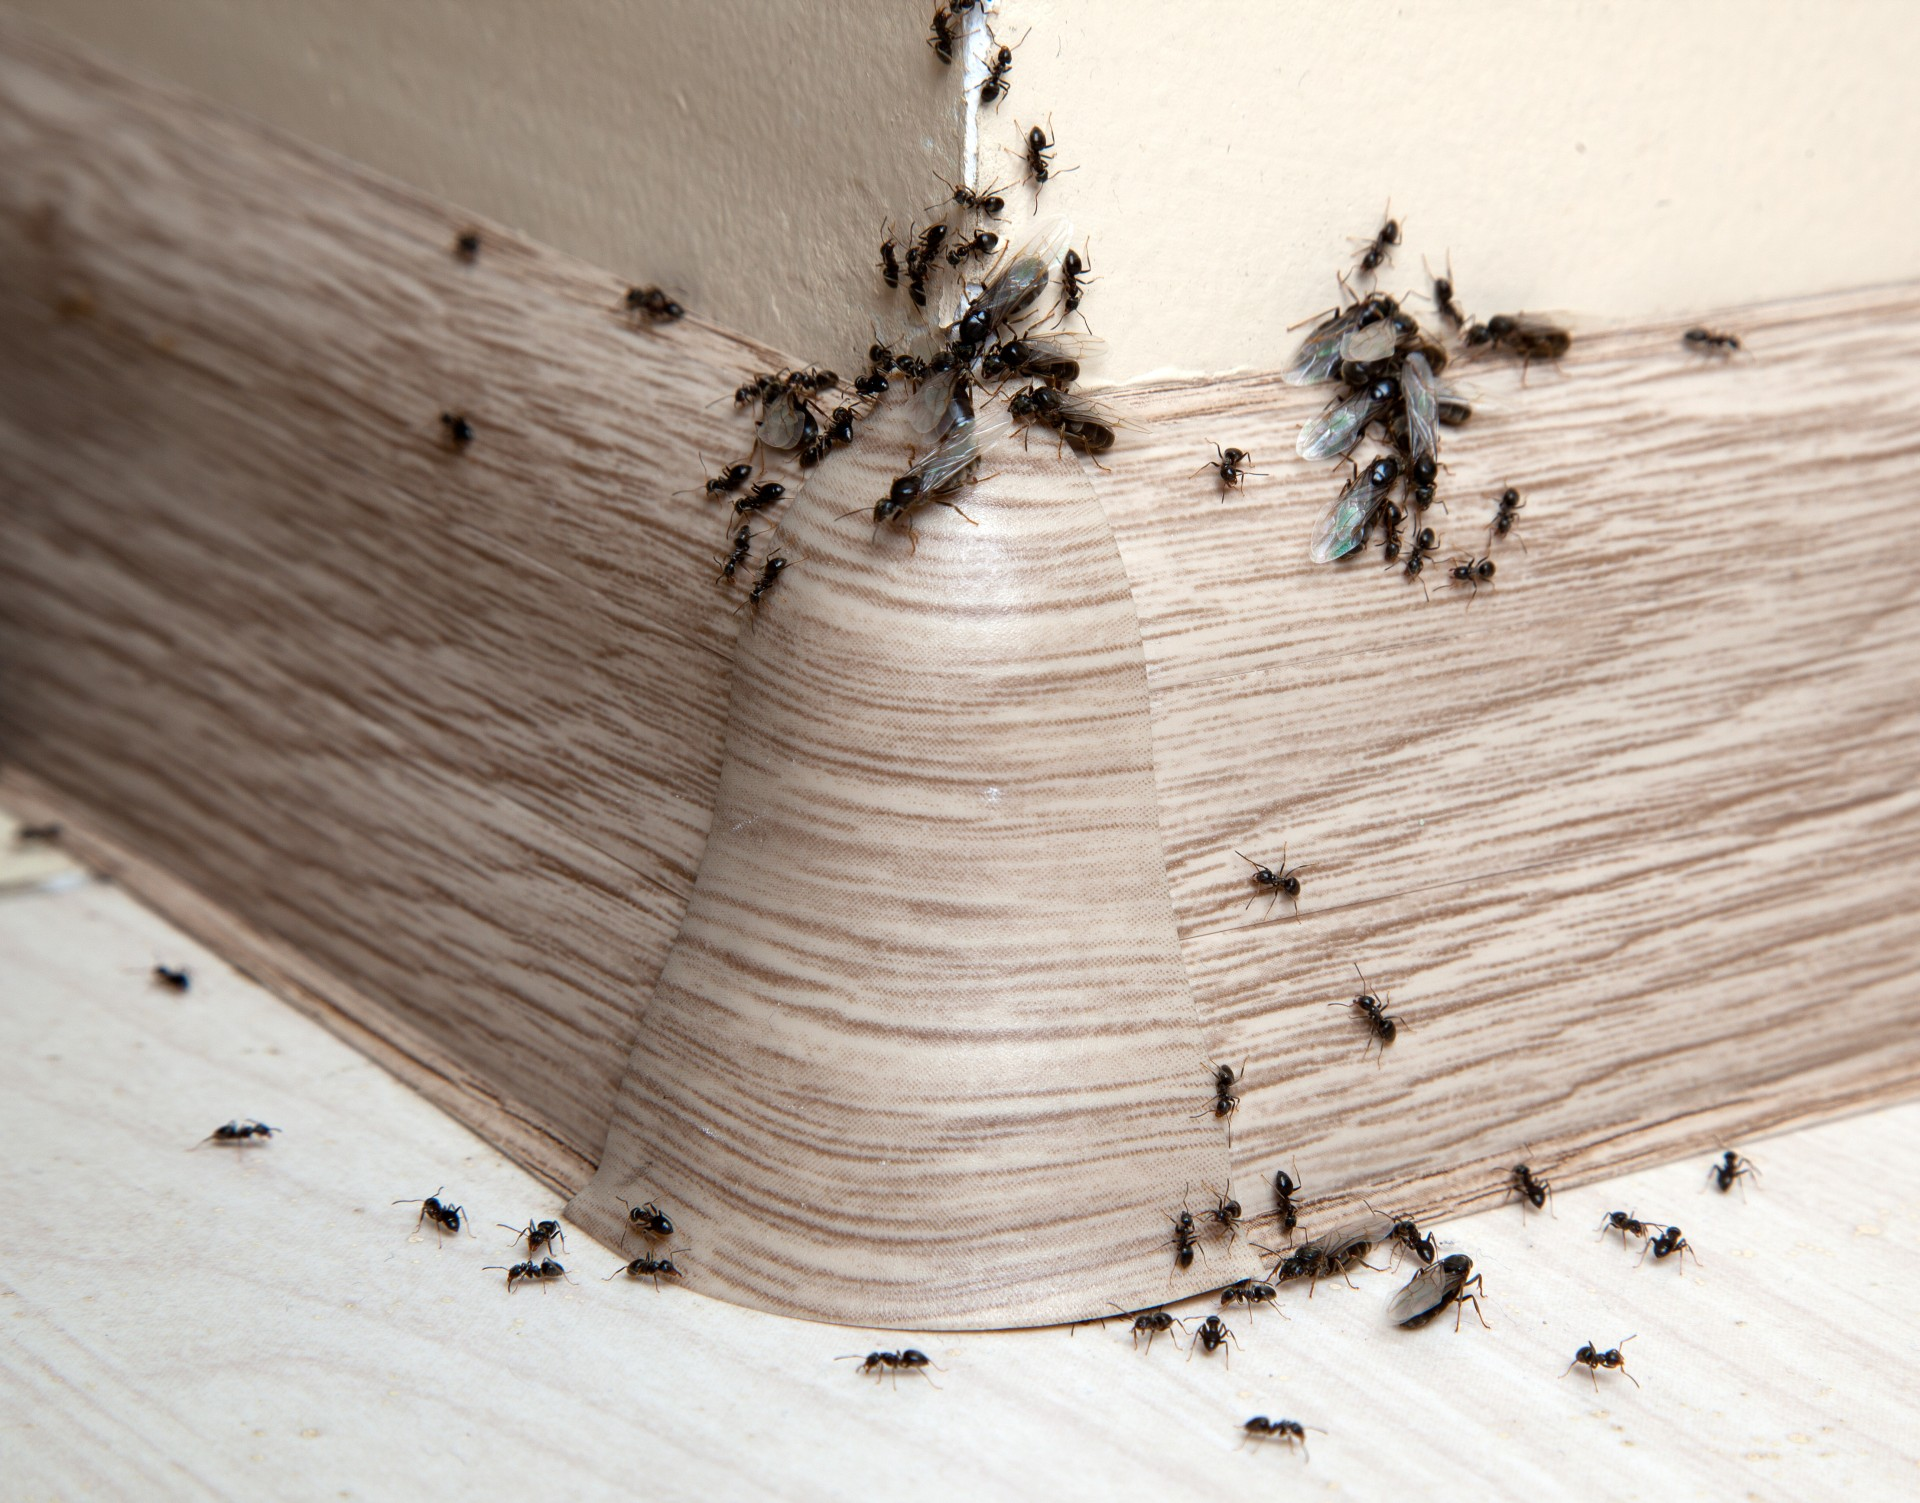 Ant Infestation, Pest Control in Great Bookham, Little Bookham, KT23. Call Now 020 8166 9746